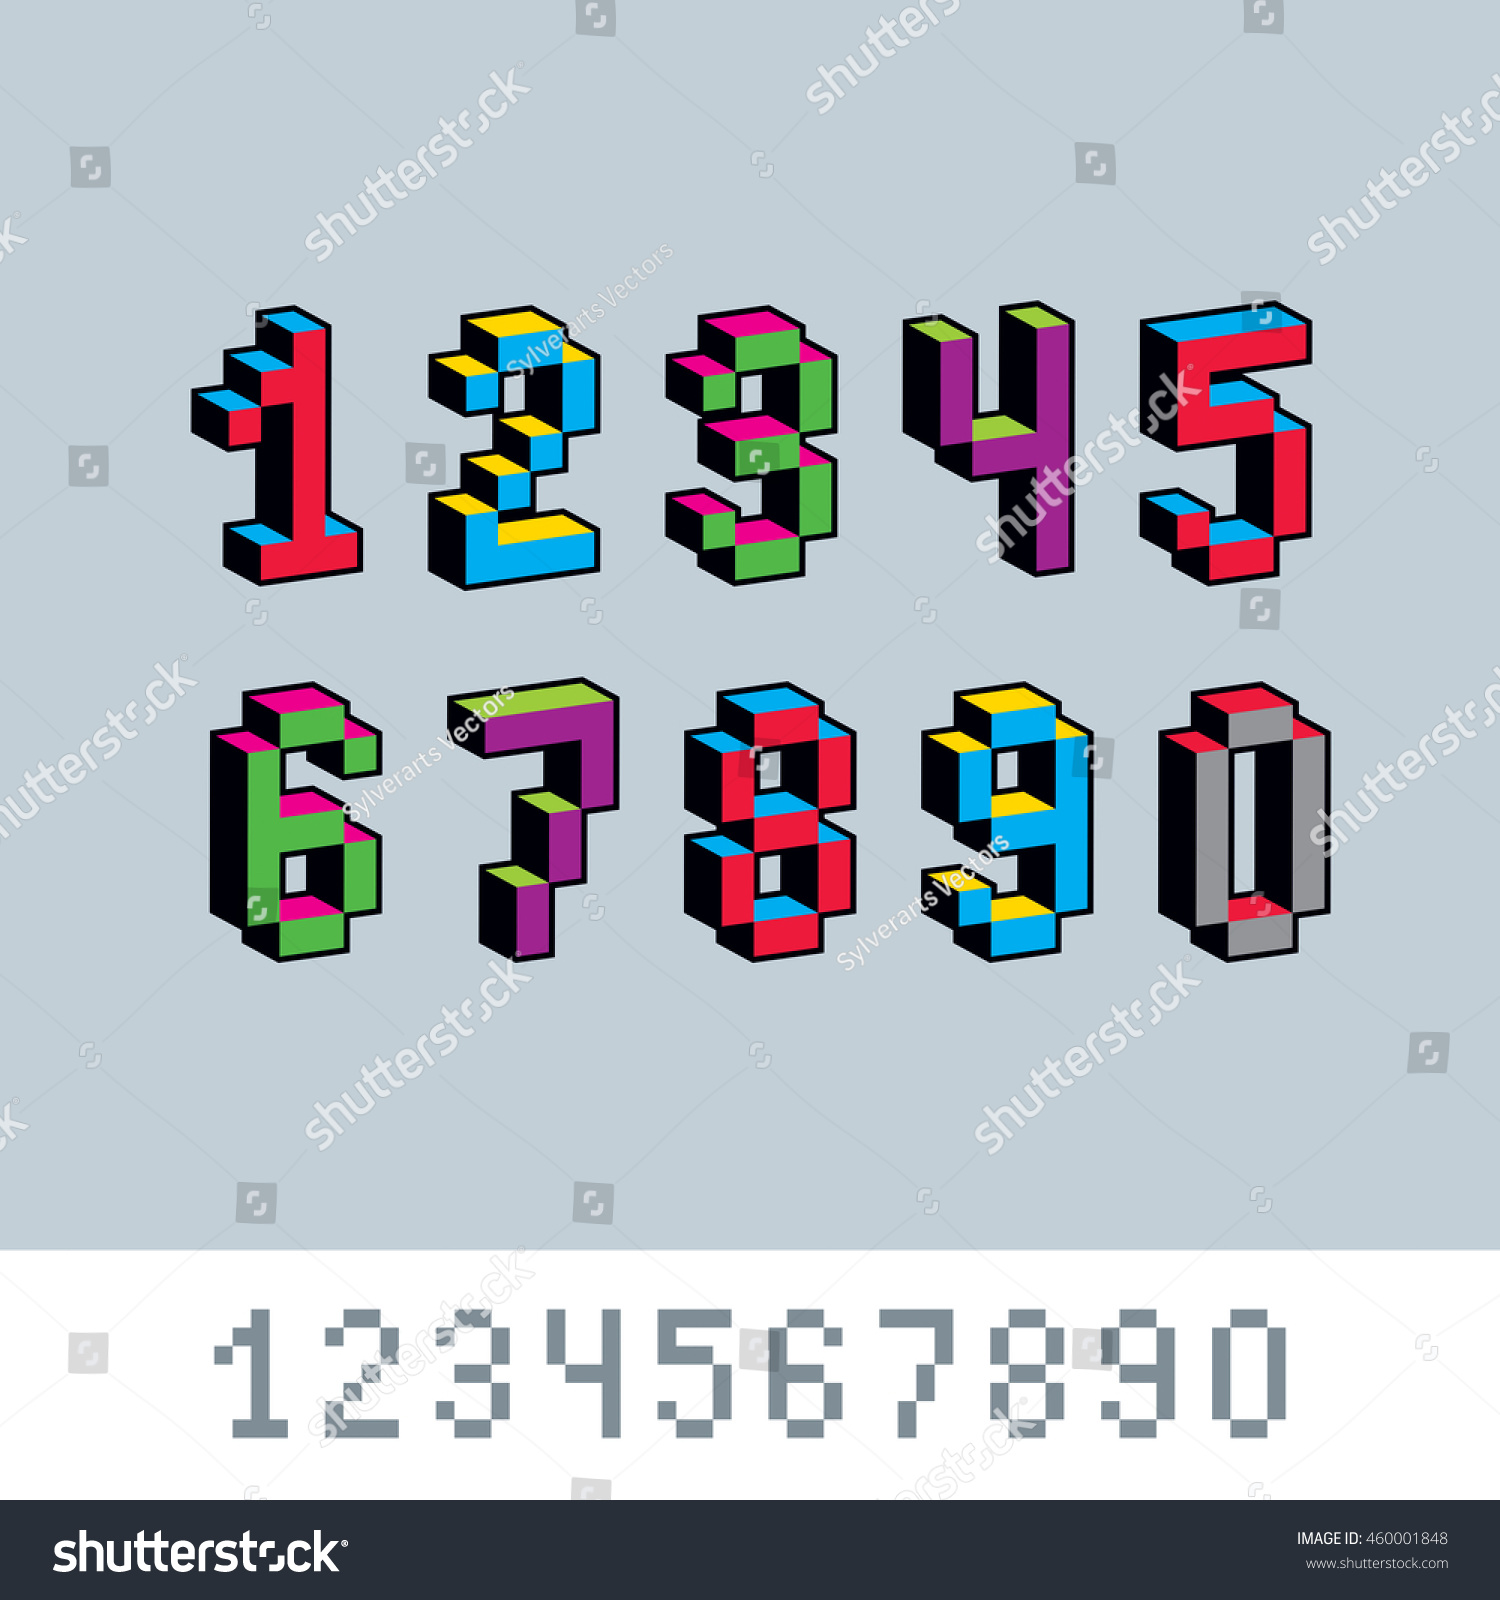 Royalty Free Stock Illustration of Digits Numerals Created 8 Bit ...